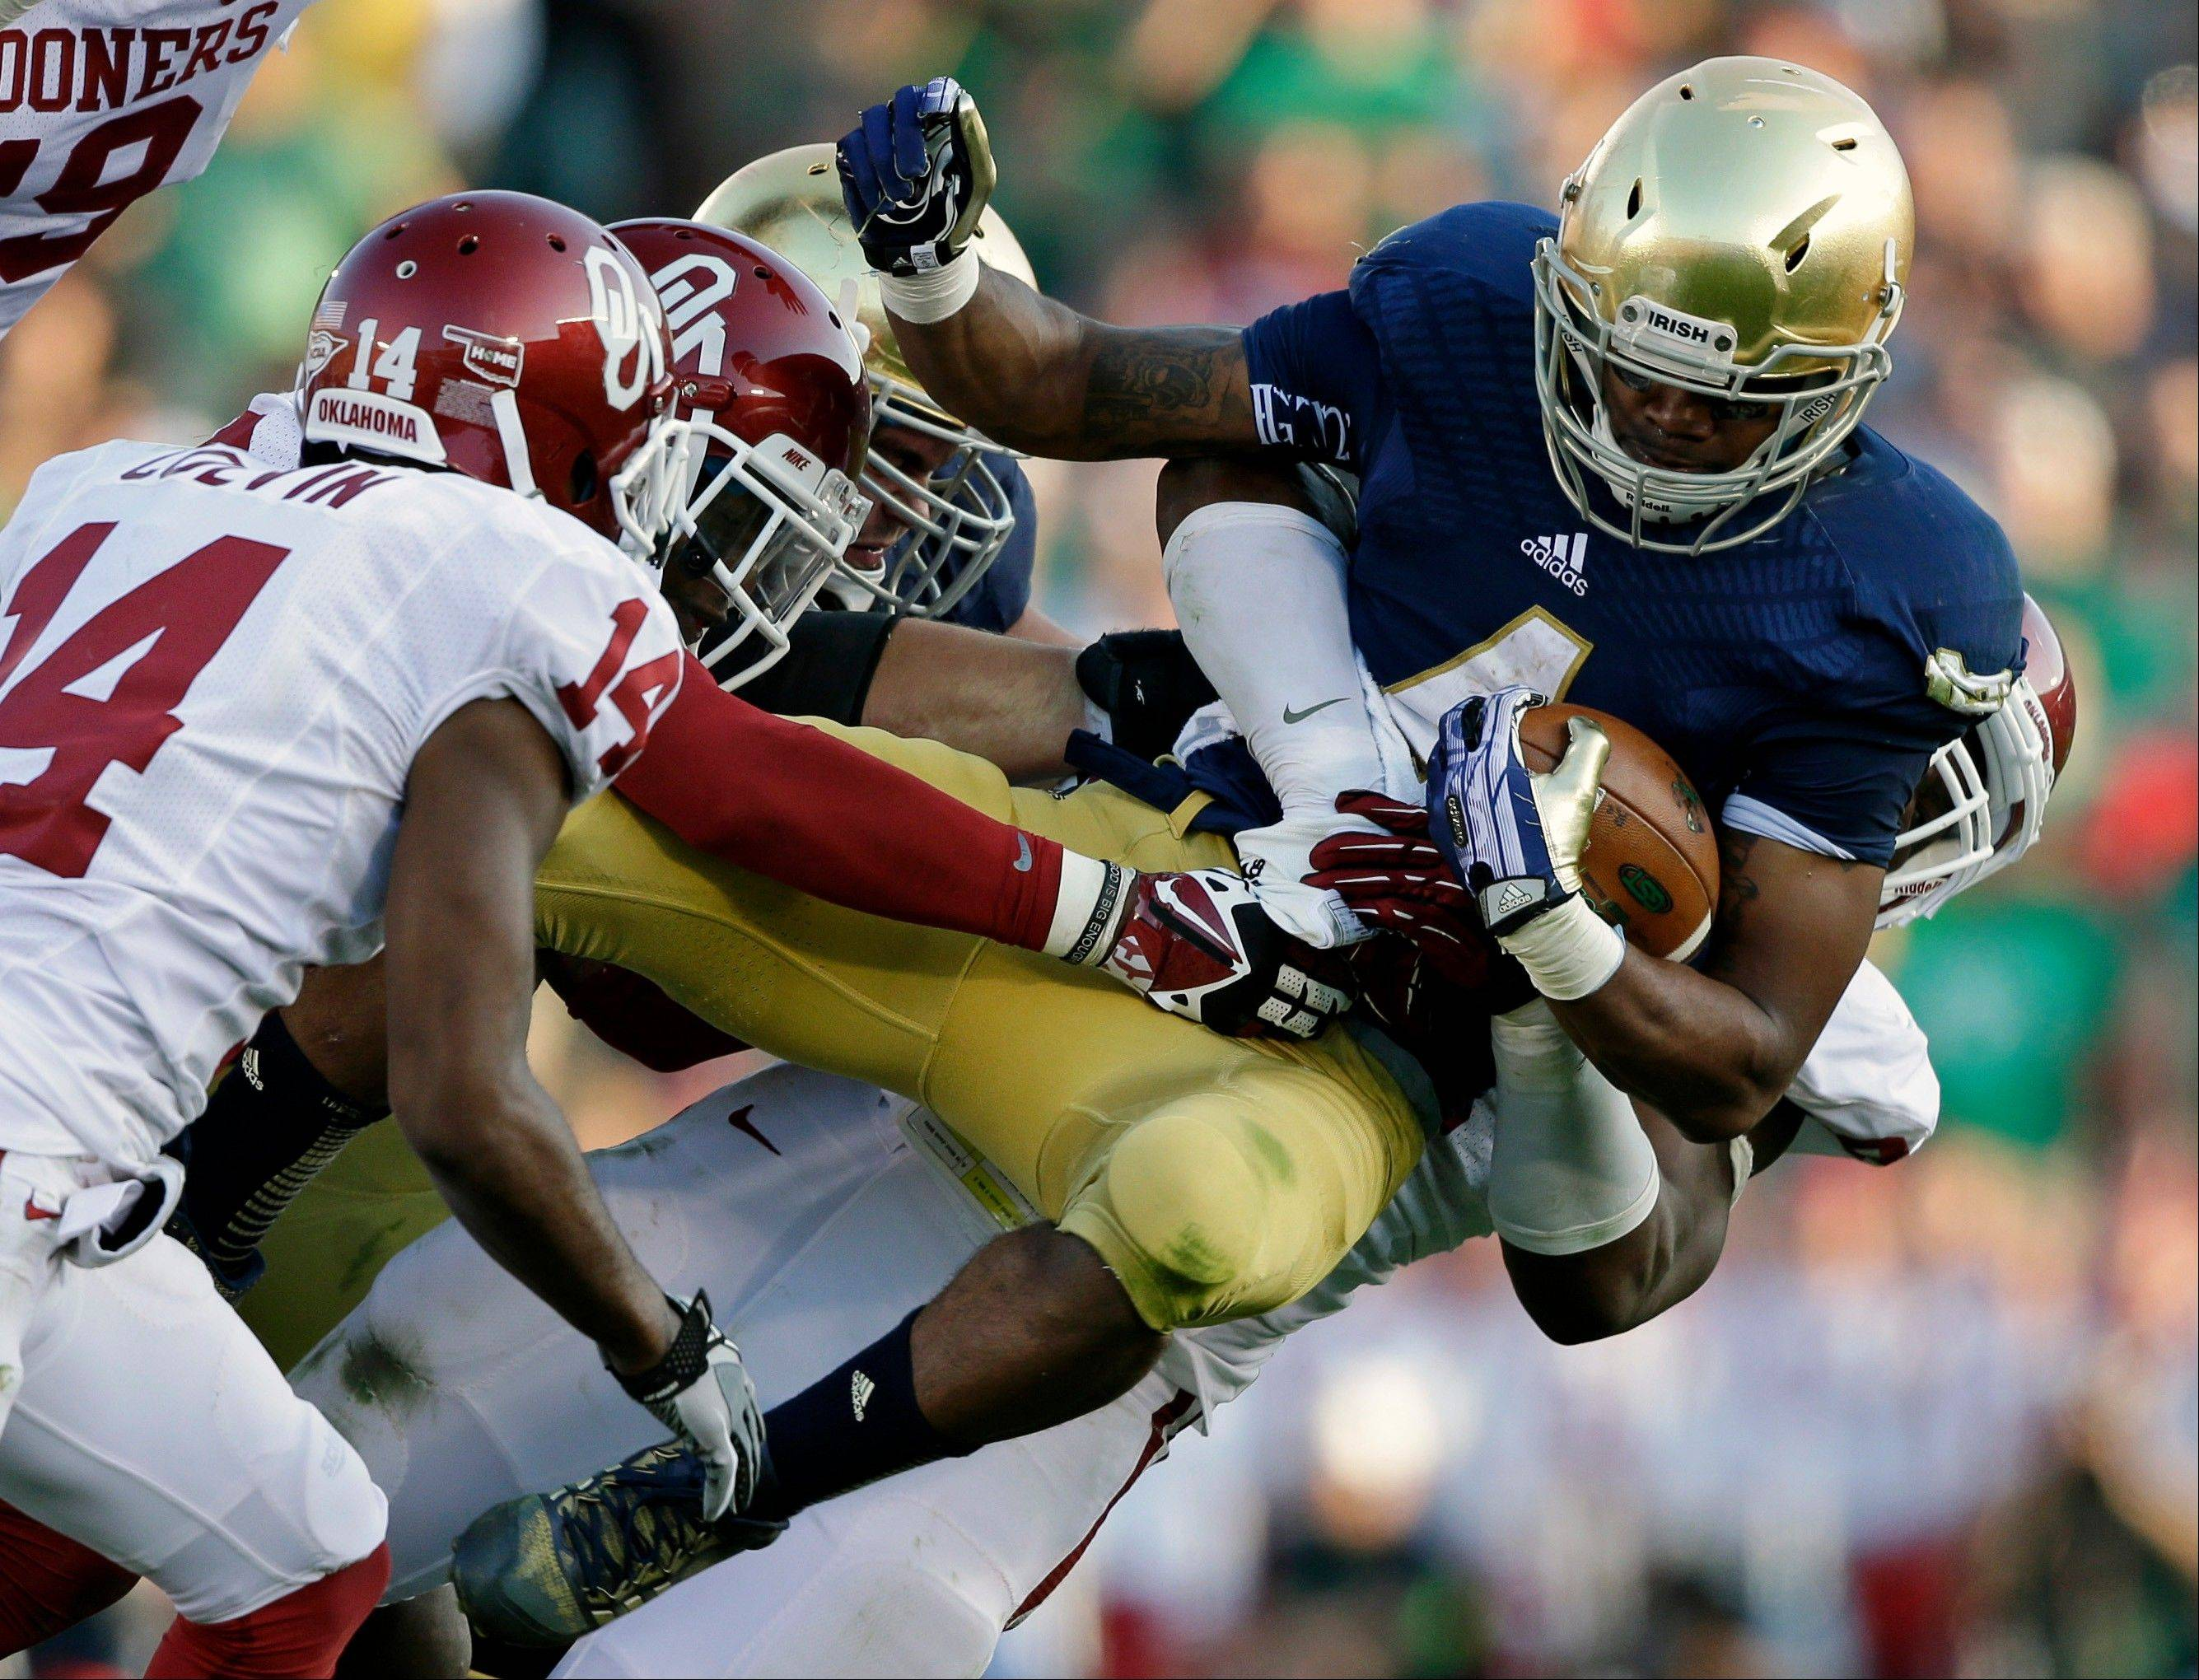 Notre Dame�s George Atkinson III is tackled by Oklahoma�s Geneo Grissom during the second half of Saturday�s game in South Bend, Ind. Oklahoma defeated Notre Dame 35-21.